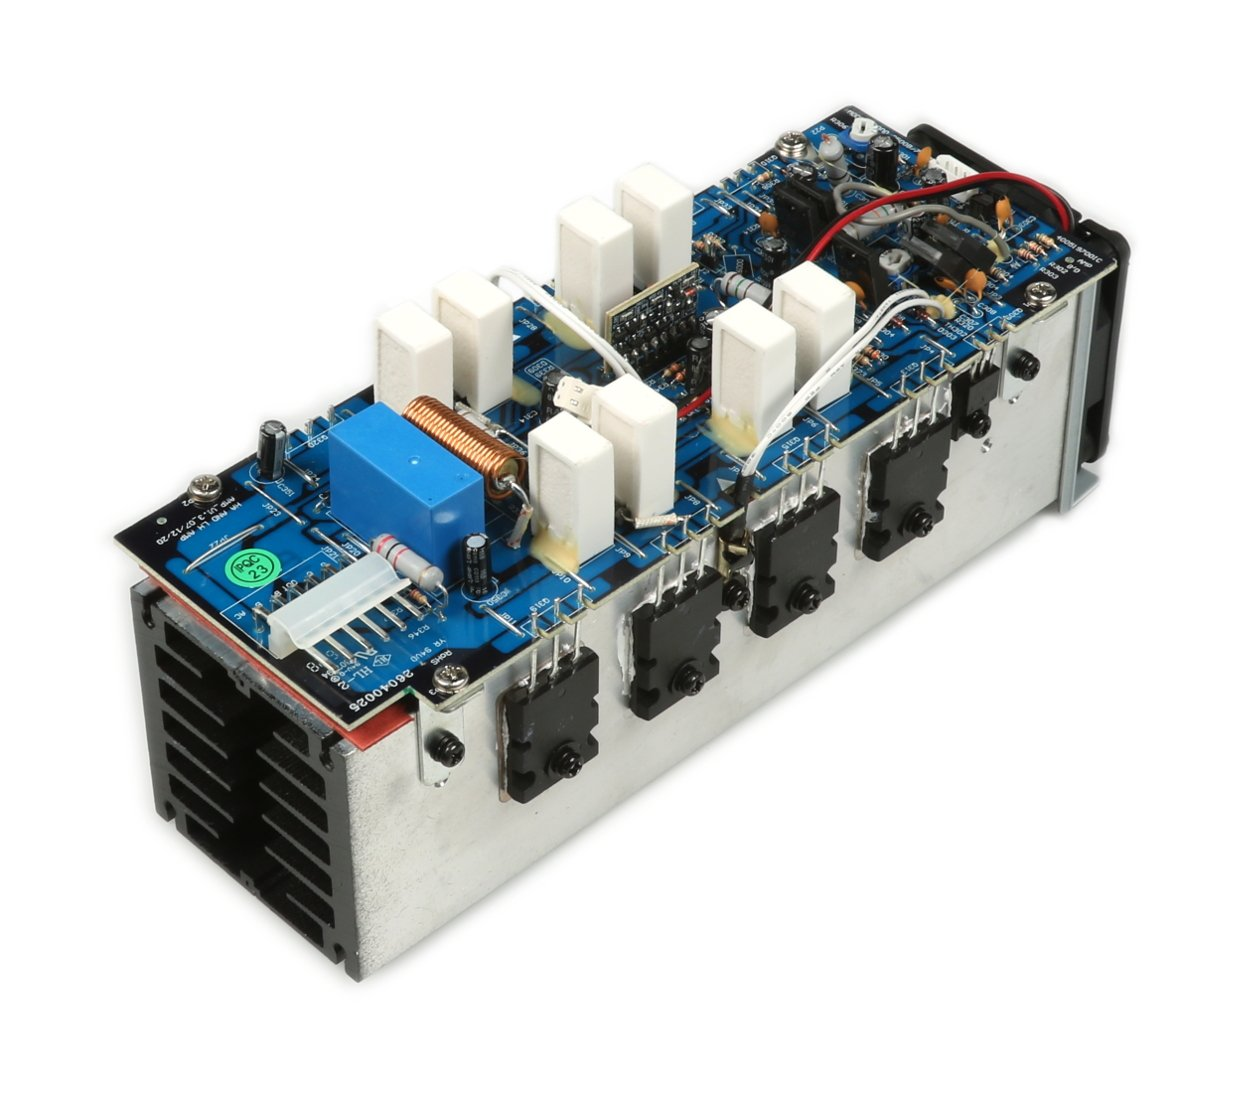 Amp Right Channel 2 Pcb For Lh1000 By Hartke 8 Cr000896 Full Amplifier Board Audio Power Circuit Quotes Our Part 50 5 1 Review Write A